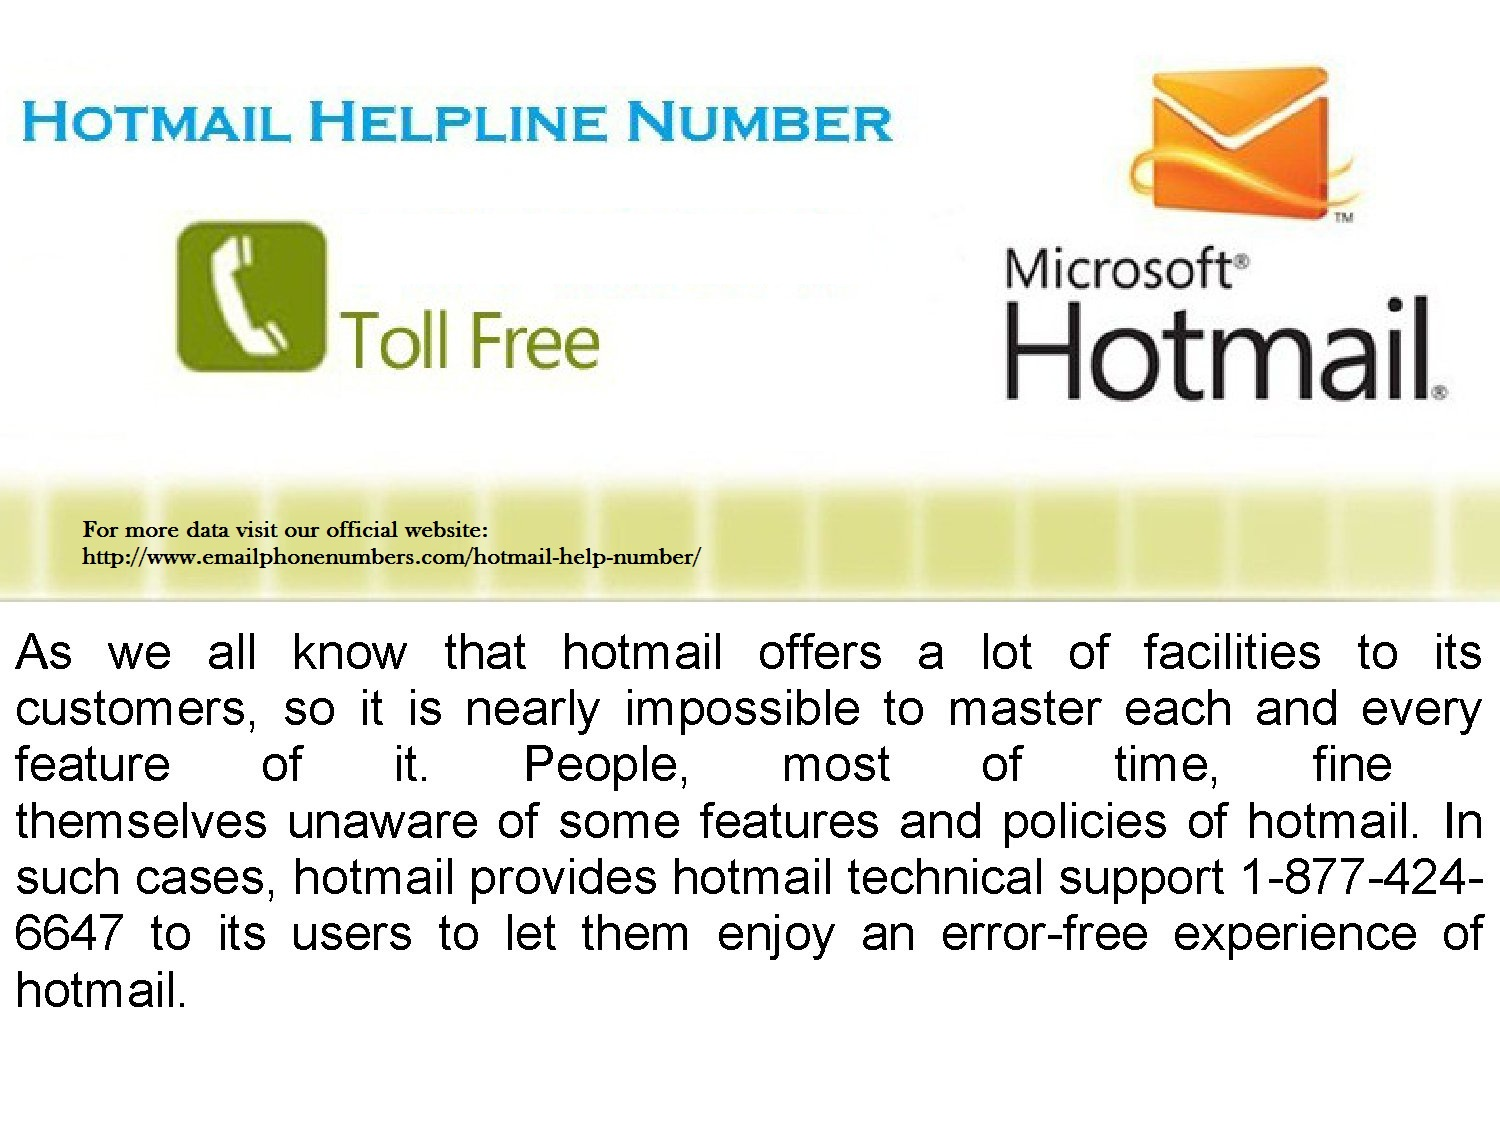 Hotmail Is One Of The Free Web Based Mailing Services With The Highest  Number Of Users. Also Called Microsoft Hotmail, Its Error Free Performance  And Top ... Design Ideas